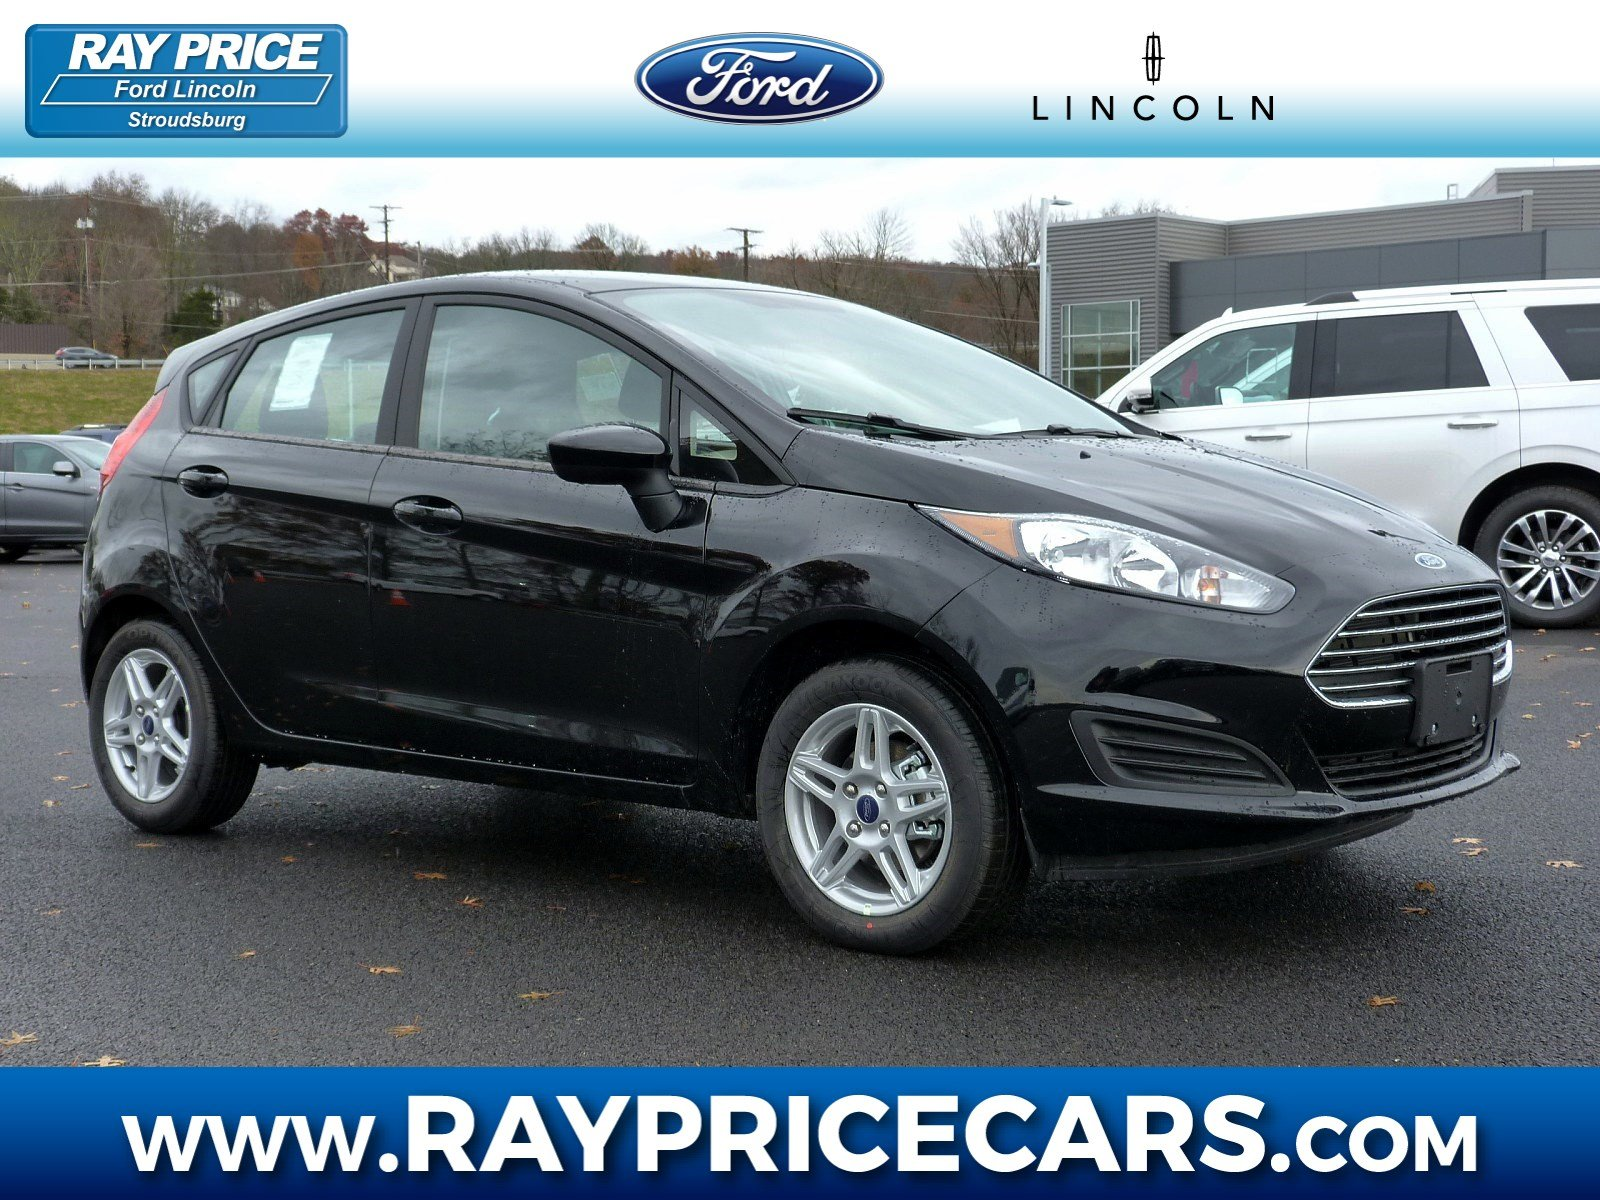 New 2019 ford fiesta for sale or lease stroudsburg pa vin 3fadp4ej6km100809